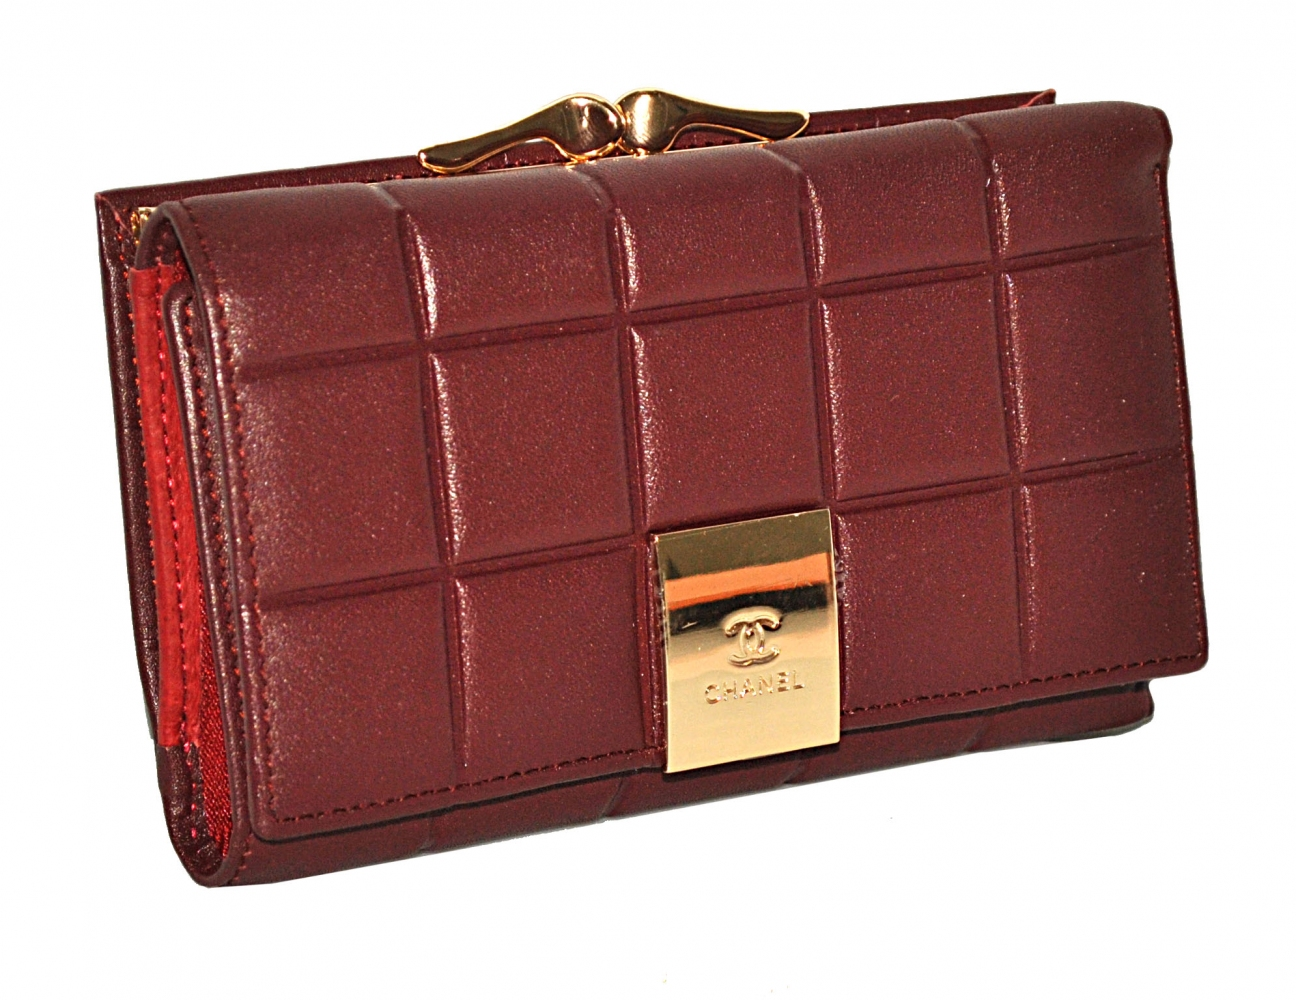 Women's purse 175216 burgundy